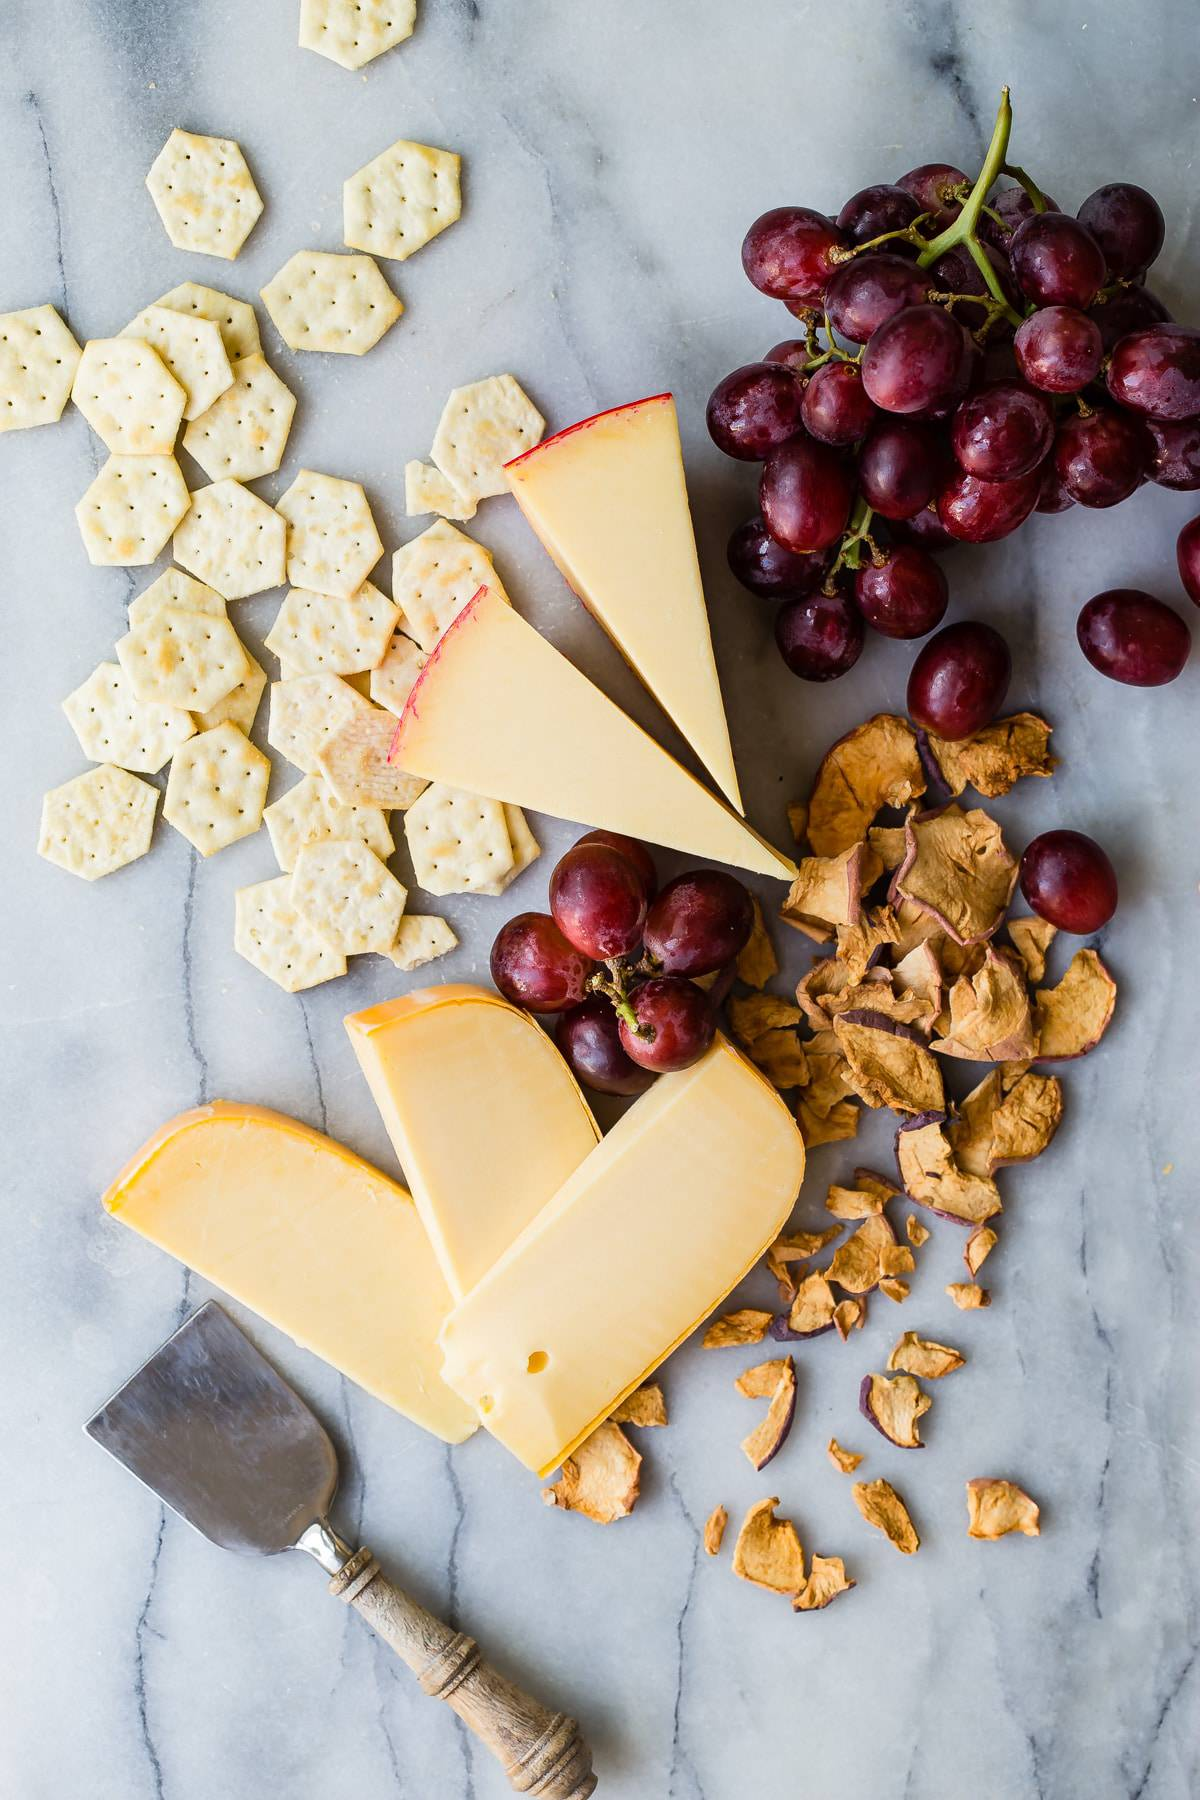 slices of Gouda cheese on a cheese board